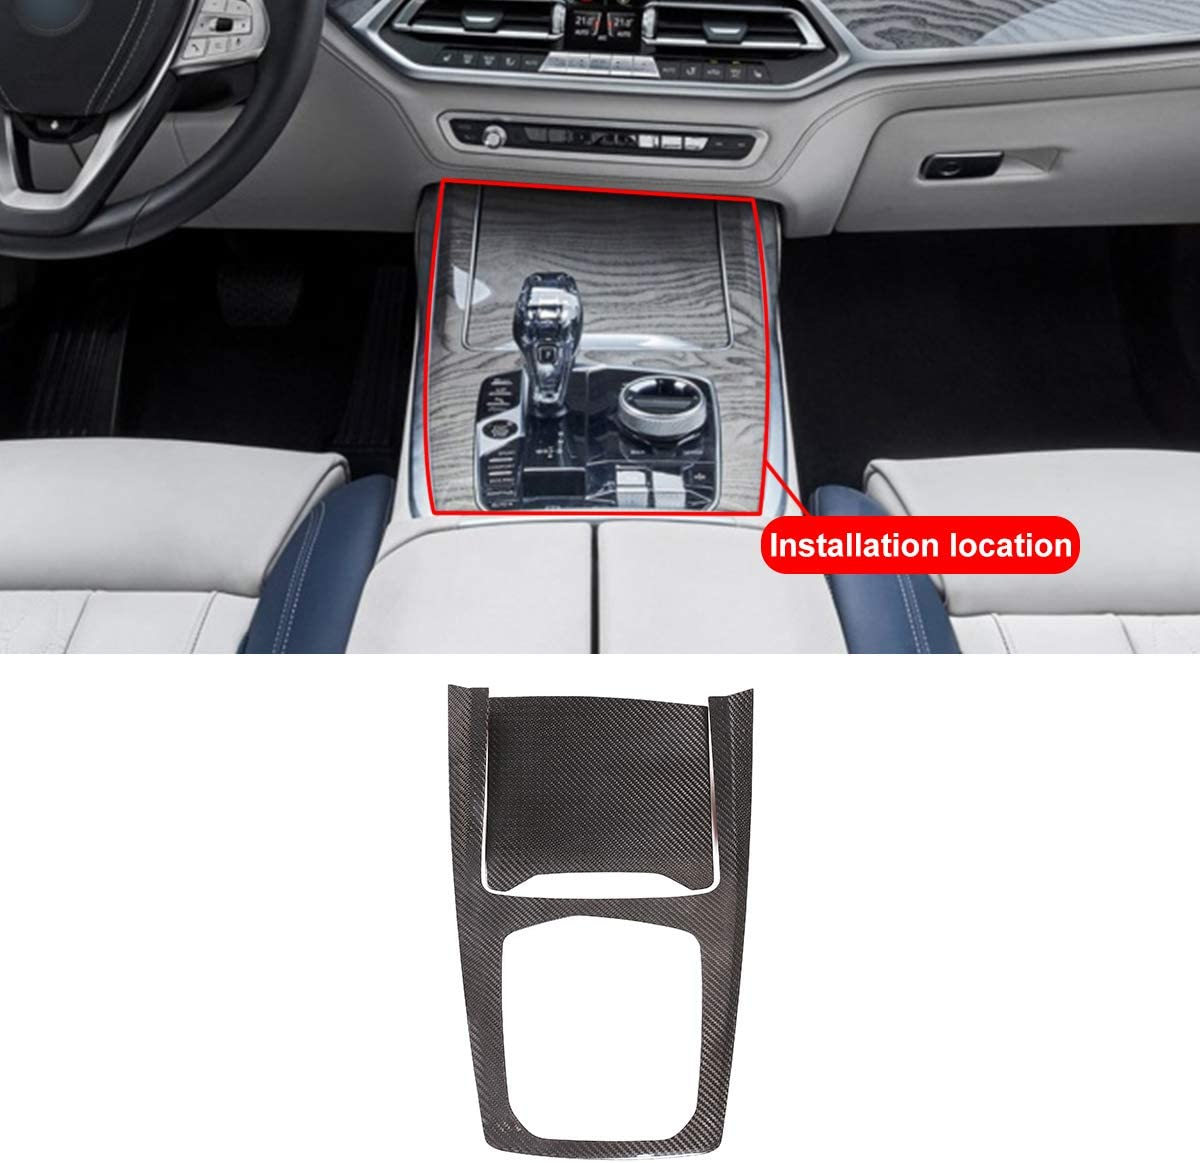 Real Now on sale Carbon Fiber Car Center Tri Consoles Decoration Cover Max 67% OFF Panel